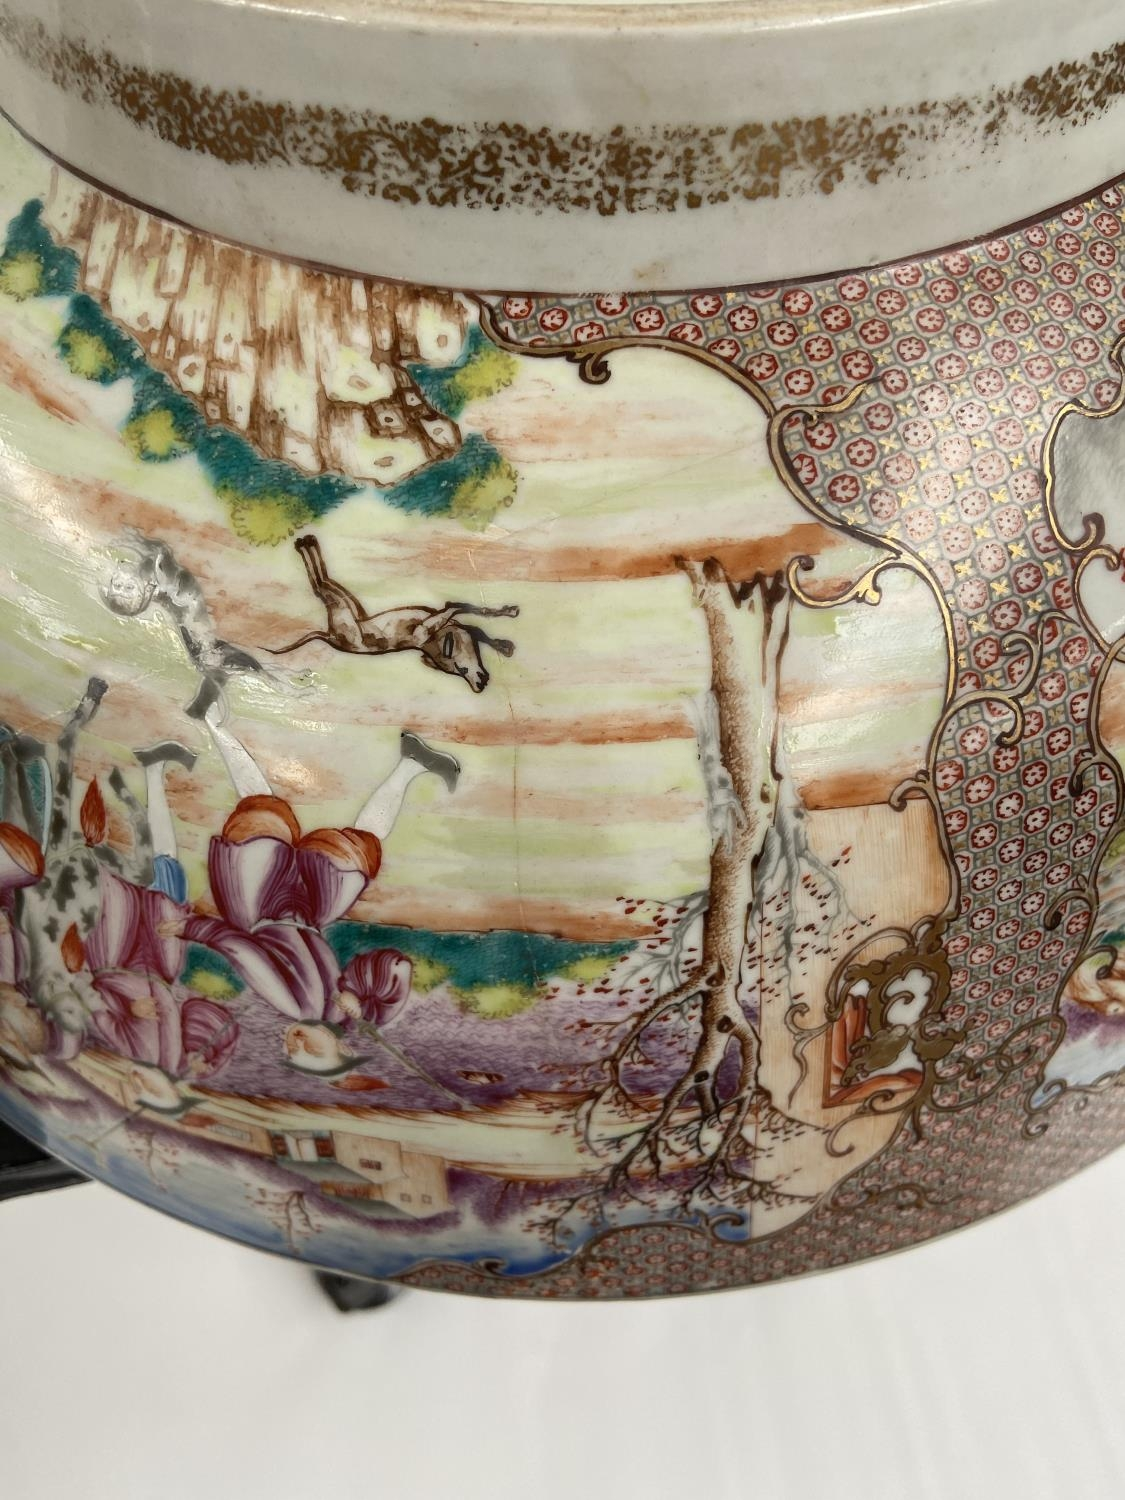 A LARGE 19TH CENTURY CHINESE HAND PAINTED BOWL. EXTERIOR DEPICTS CHINESE HUNTING SCENE PANELS. THE - Image 37 of 39